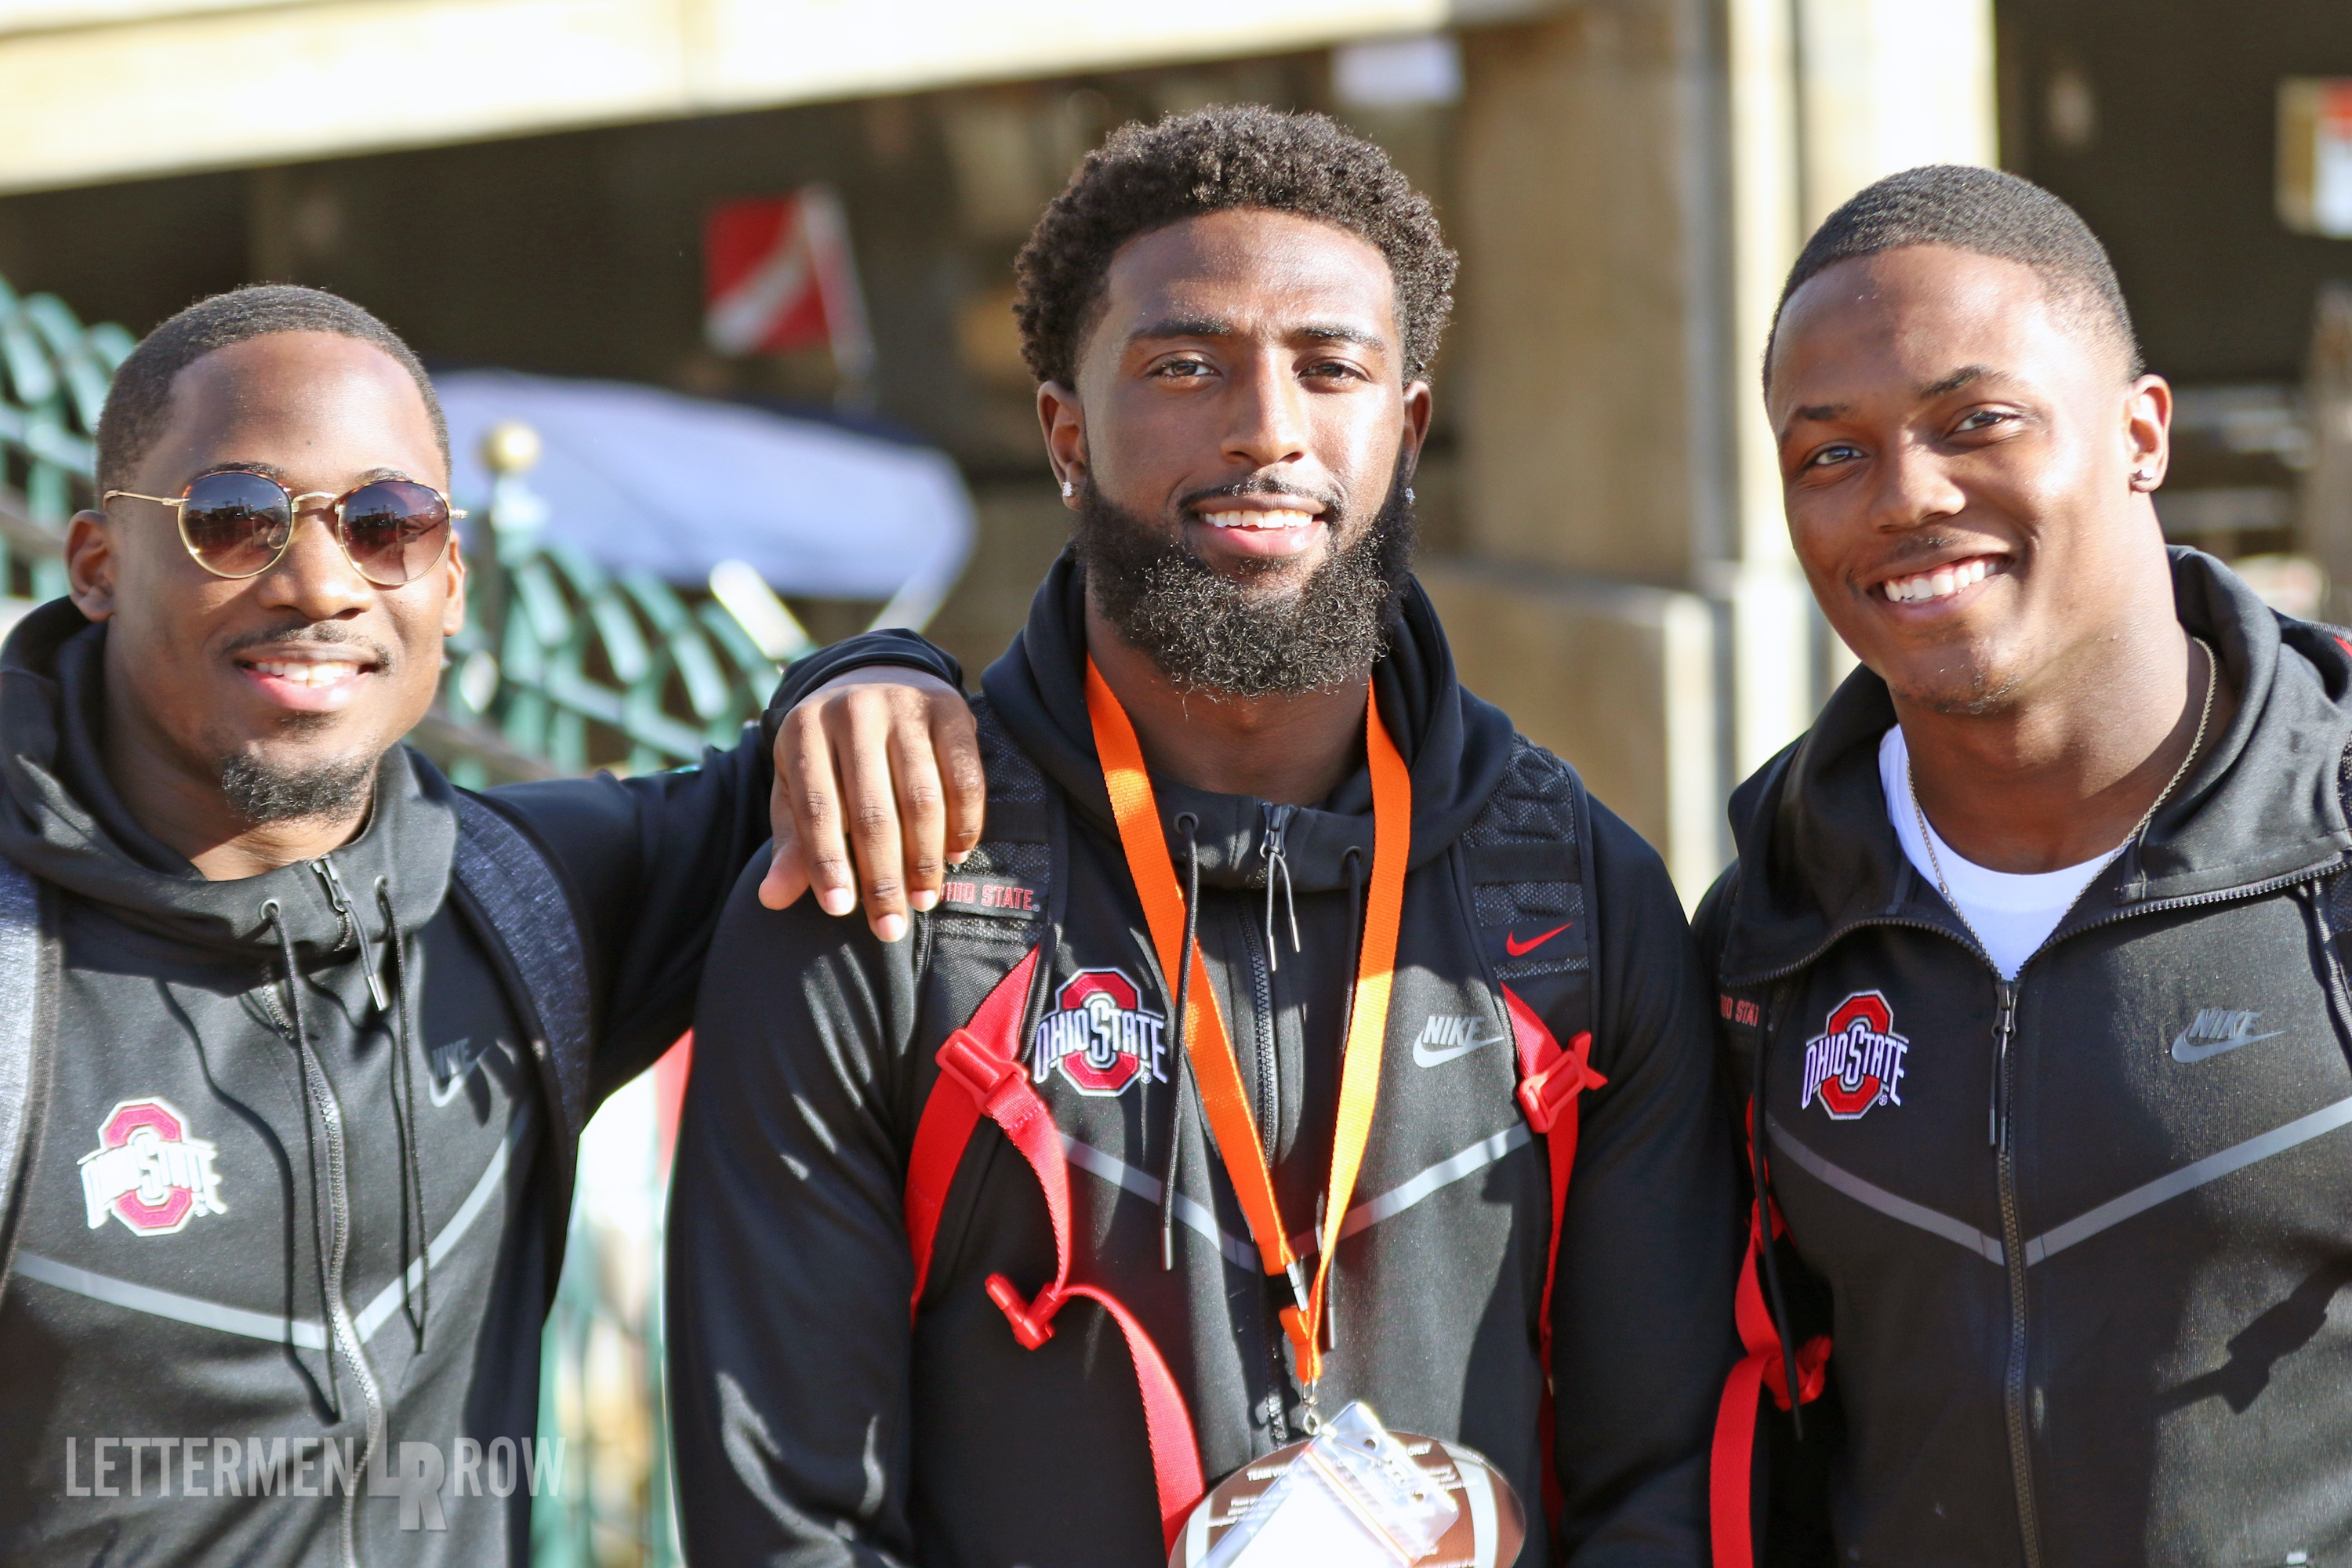 Rose Bowl Game-parris campbell johnnie dixon terry mclaurin